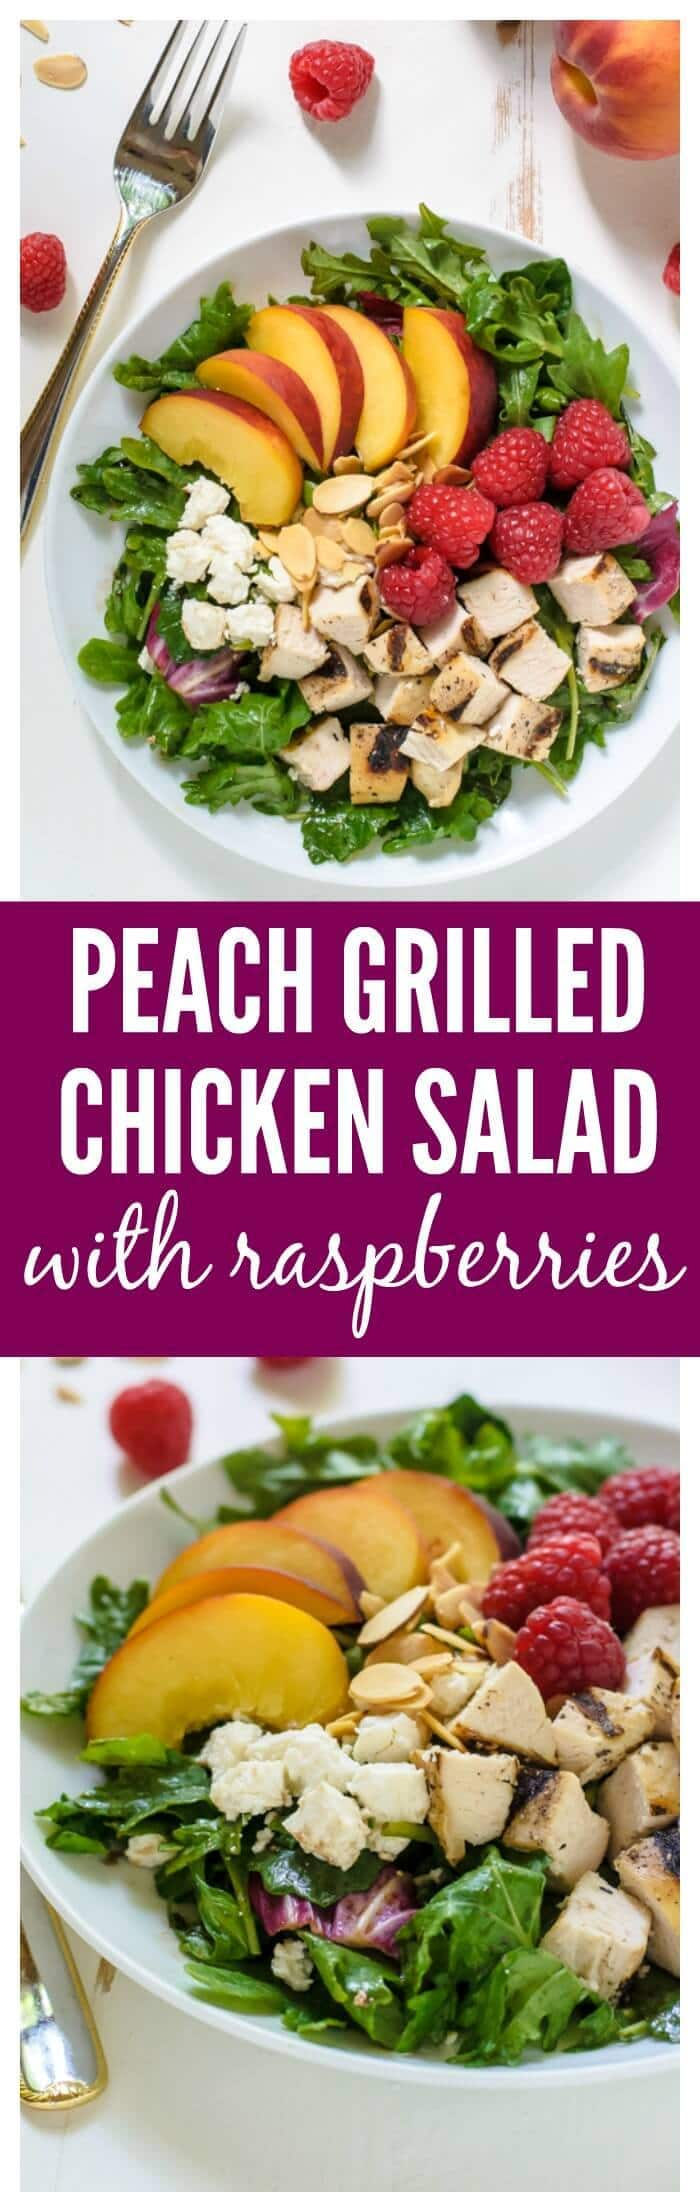 ... with Grilled Chicken, Raspberries, and Honey Balsamic Vinaigrette